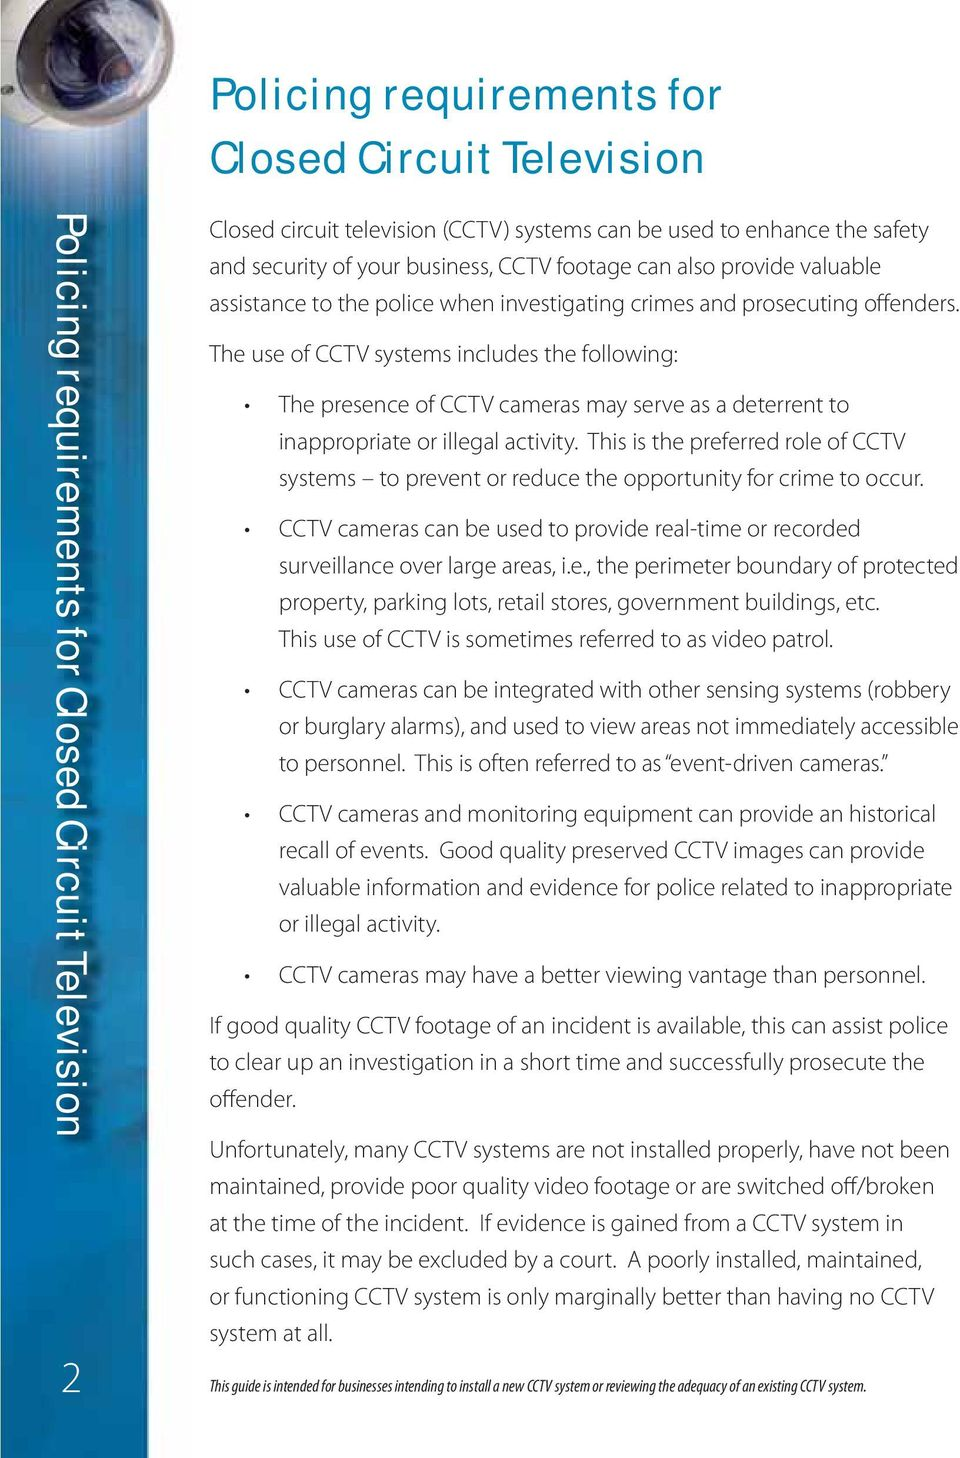 Policing requirements for Closed Circuit Television - PDF